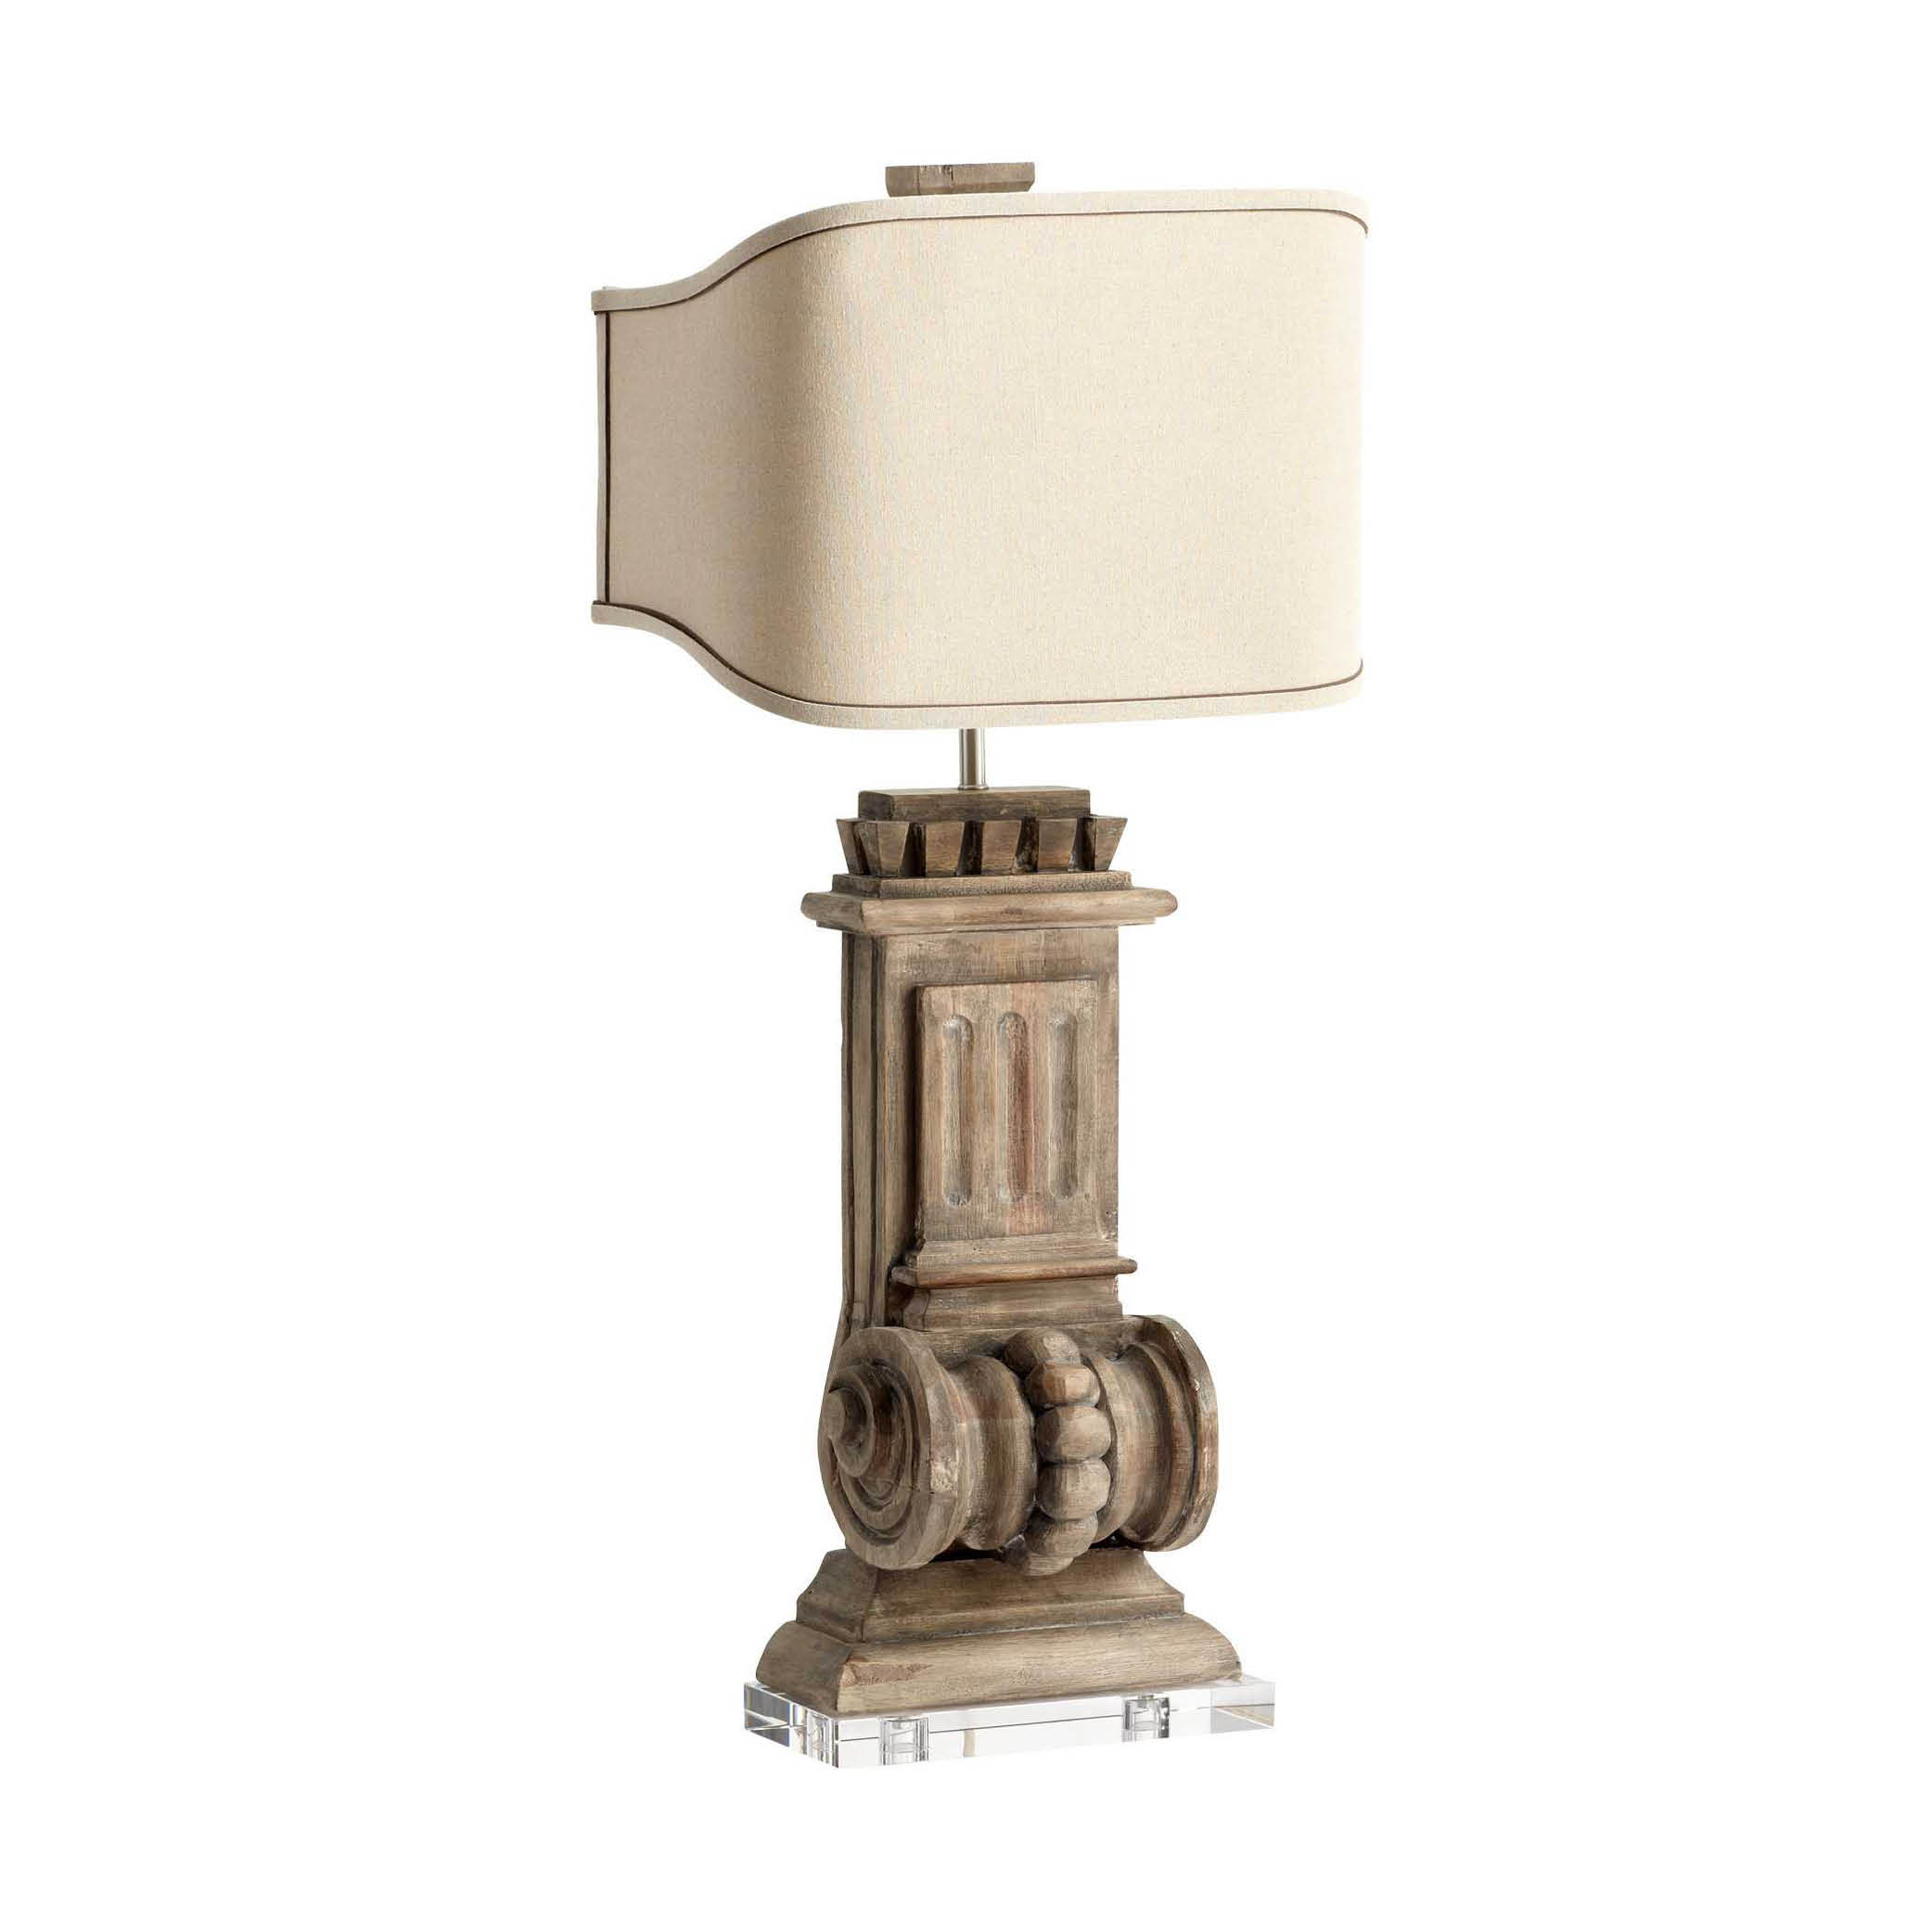 Loft Table Lamp $675.00   Wants 1 Has 0 Needs 1